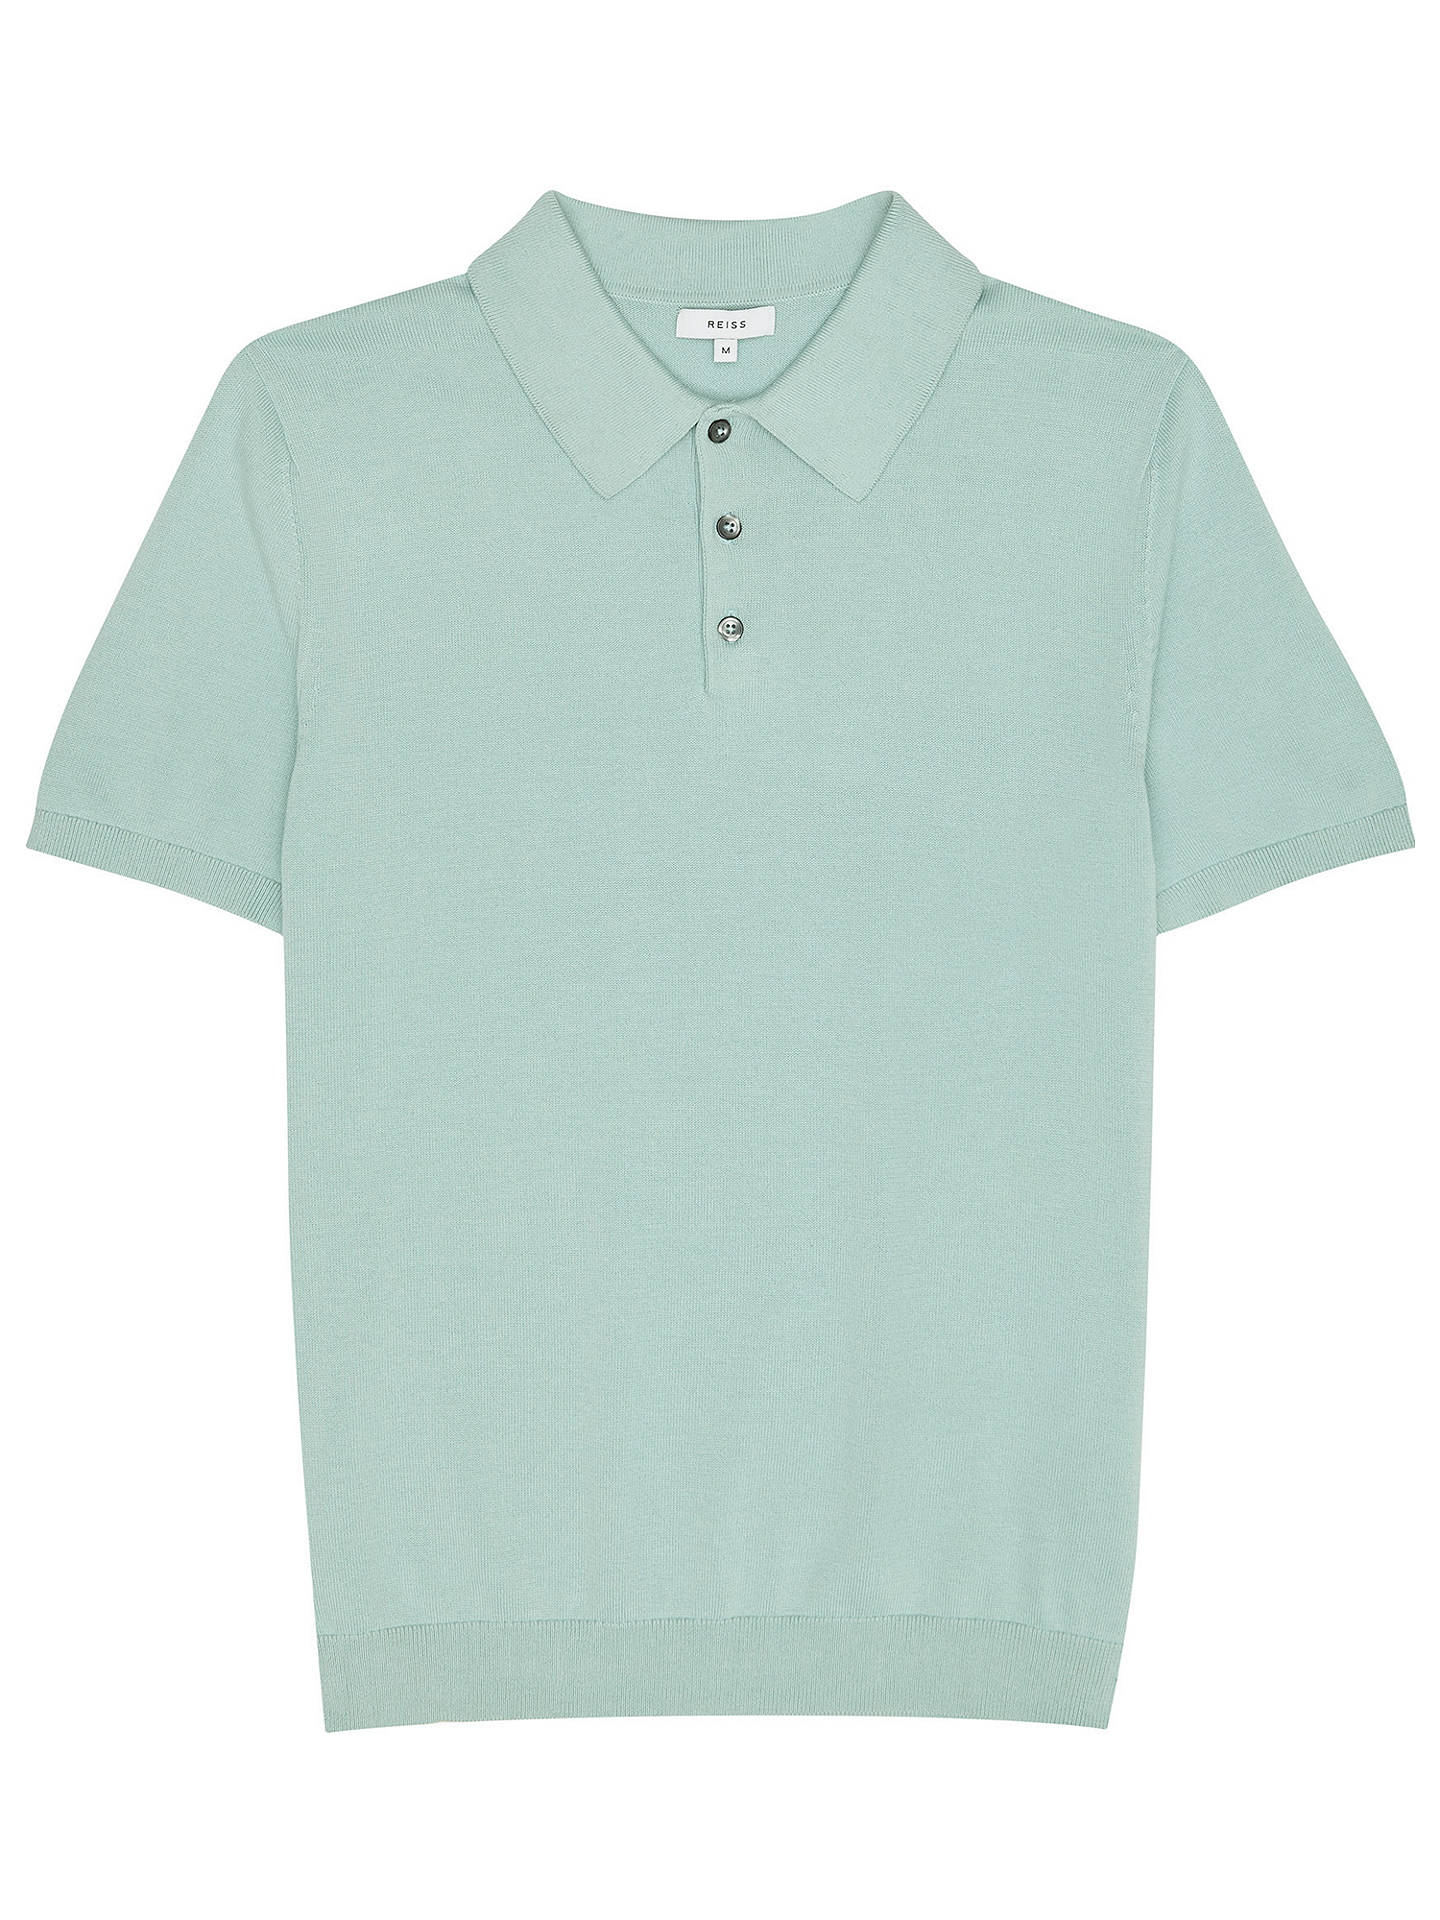 Buy Reiss Varsity Slim Fit Short Sleeve Polo Shirt, Mint, XL Online at johnlewis.com